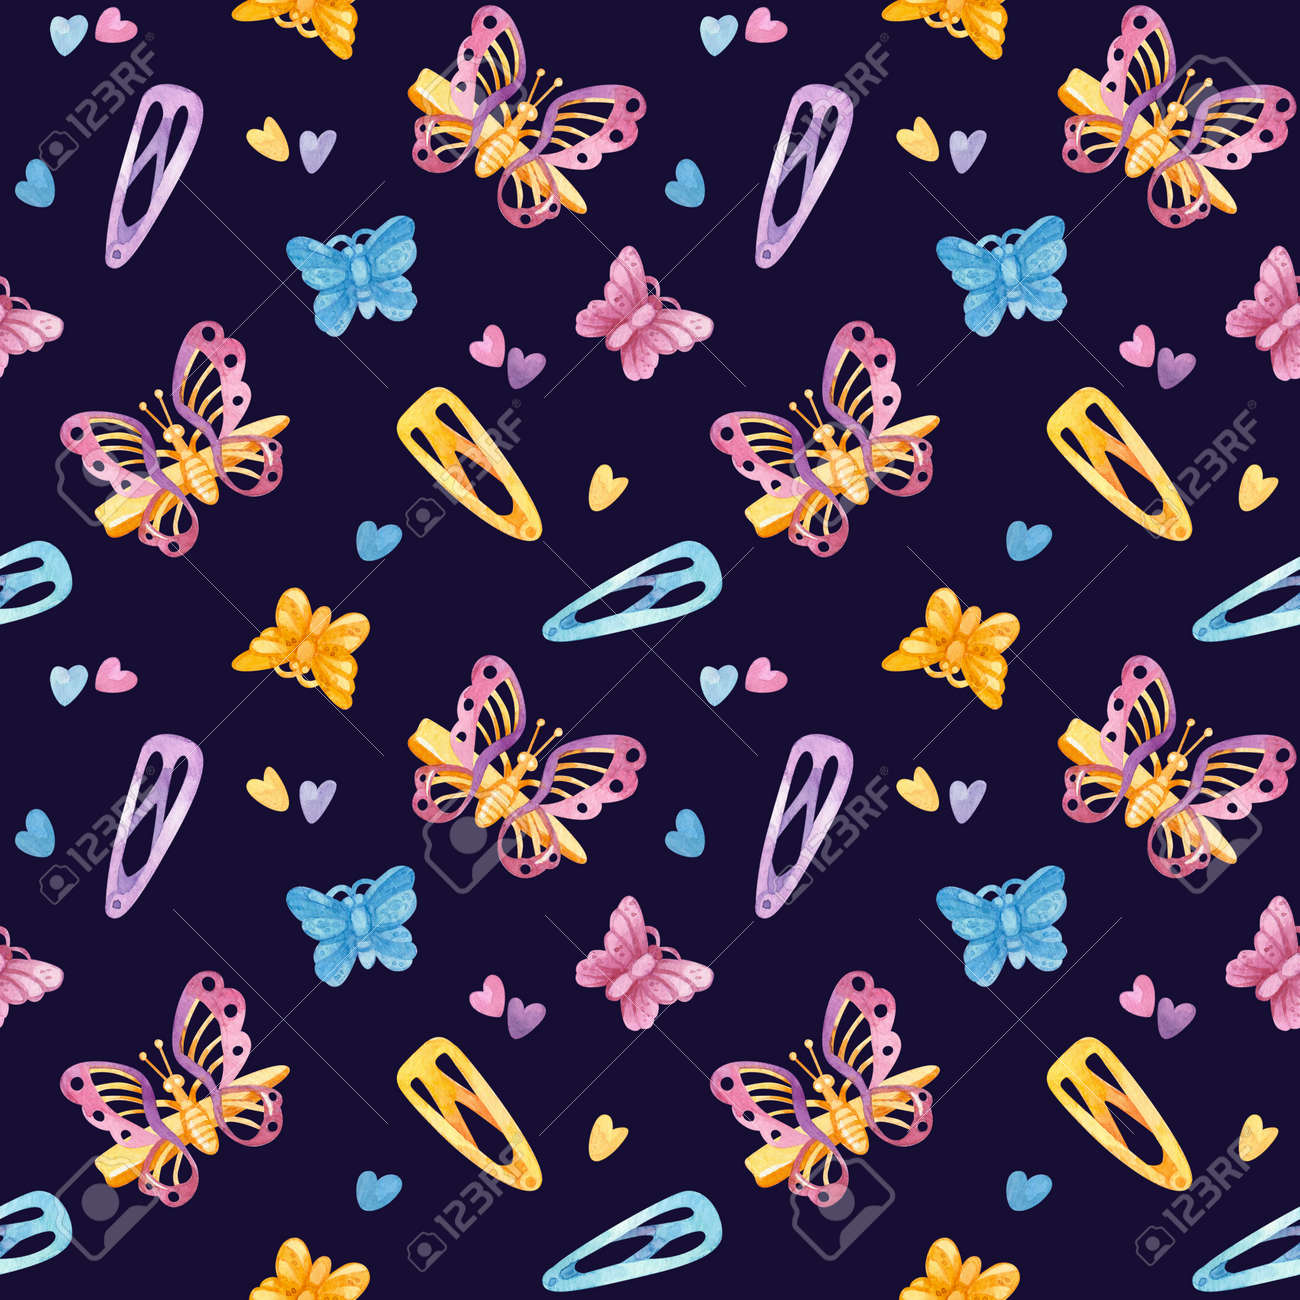 Retro seamless pattern. 90s toys,butterfly hairpins, hairpins, hearts. Watercolor girlish clipart on dark background. - 171662291